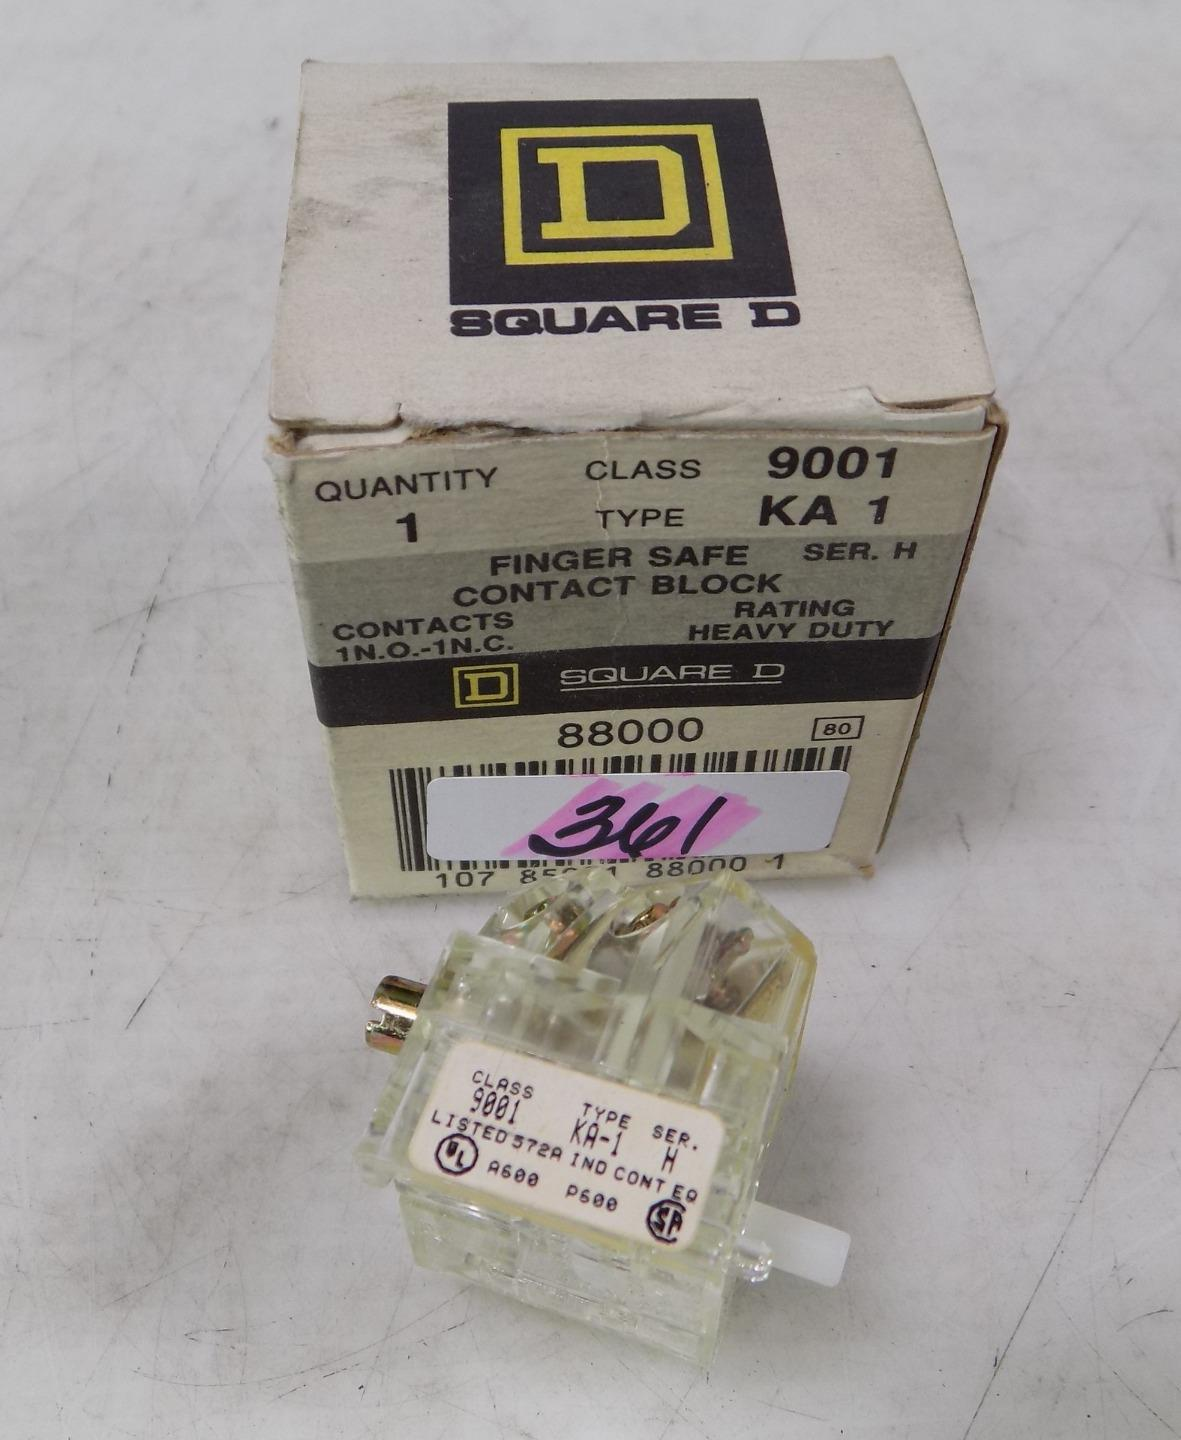 4 SQUARE D 9001-KA1 CONTACT BLOCK LOT OF 4